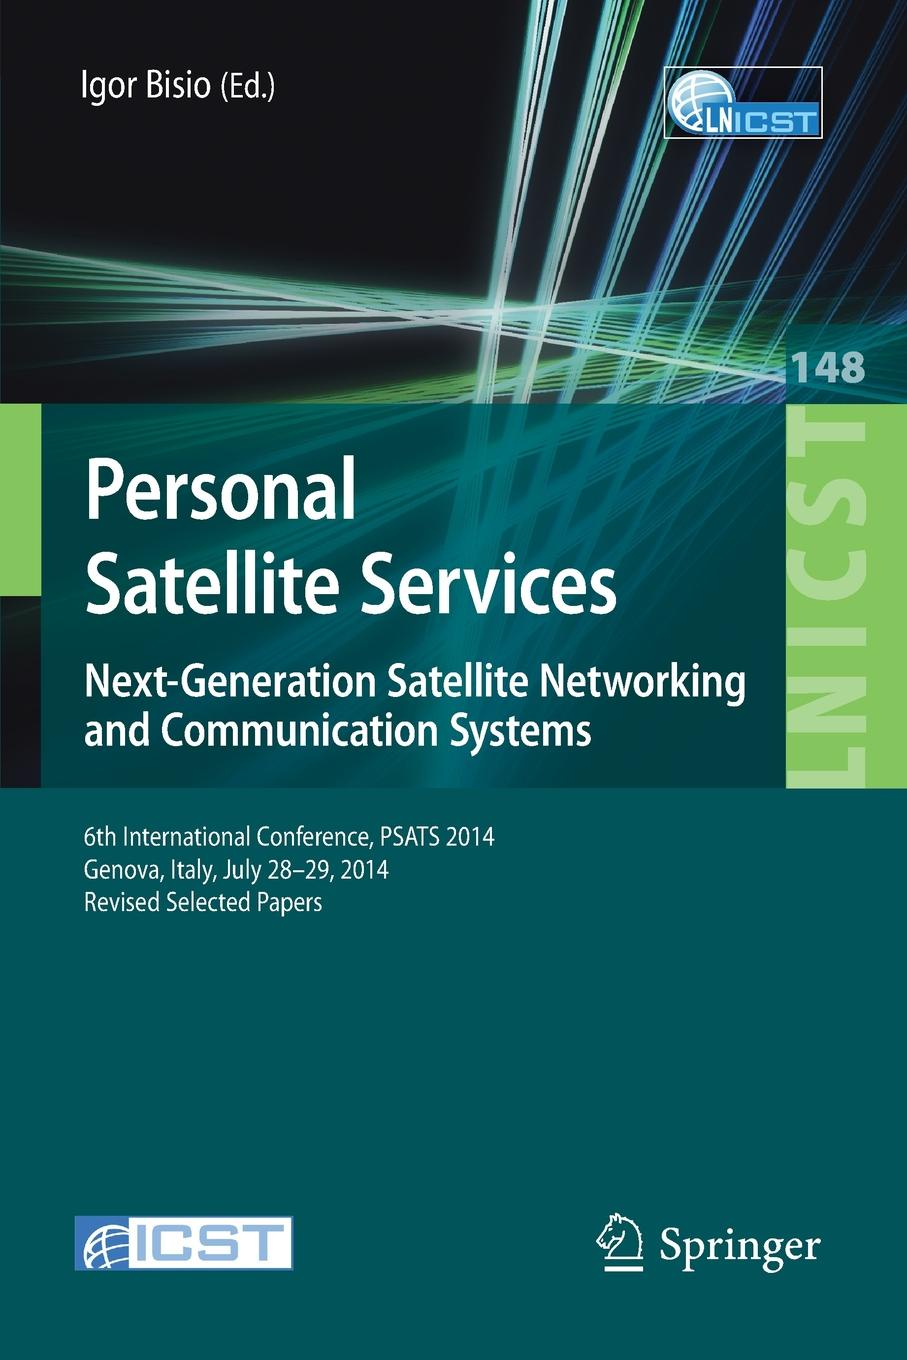 Personal Satellite Services. Next-Generation Satellite Networking and Communication Systems. 6th International Conference, PSATS 2014, Genoa, Italy, July 28-29, 2014, Revised Selected Papers цена в Москве и Питере